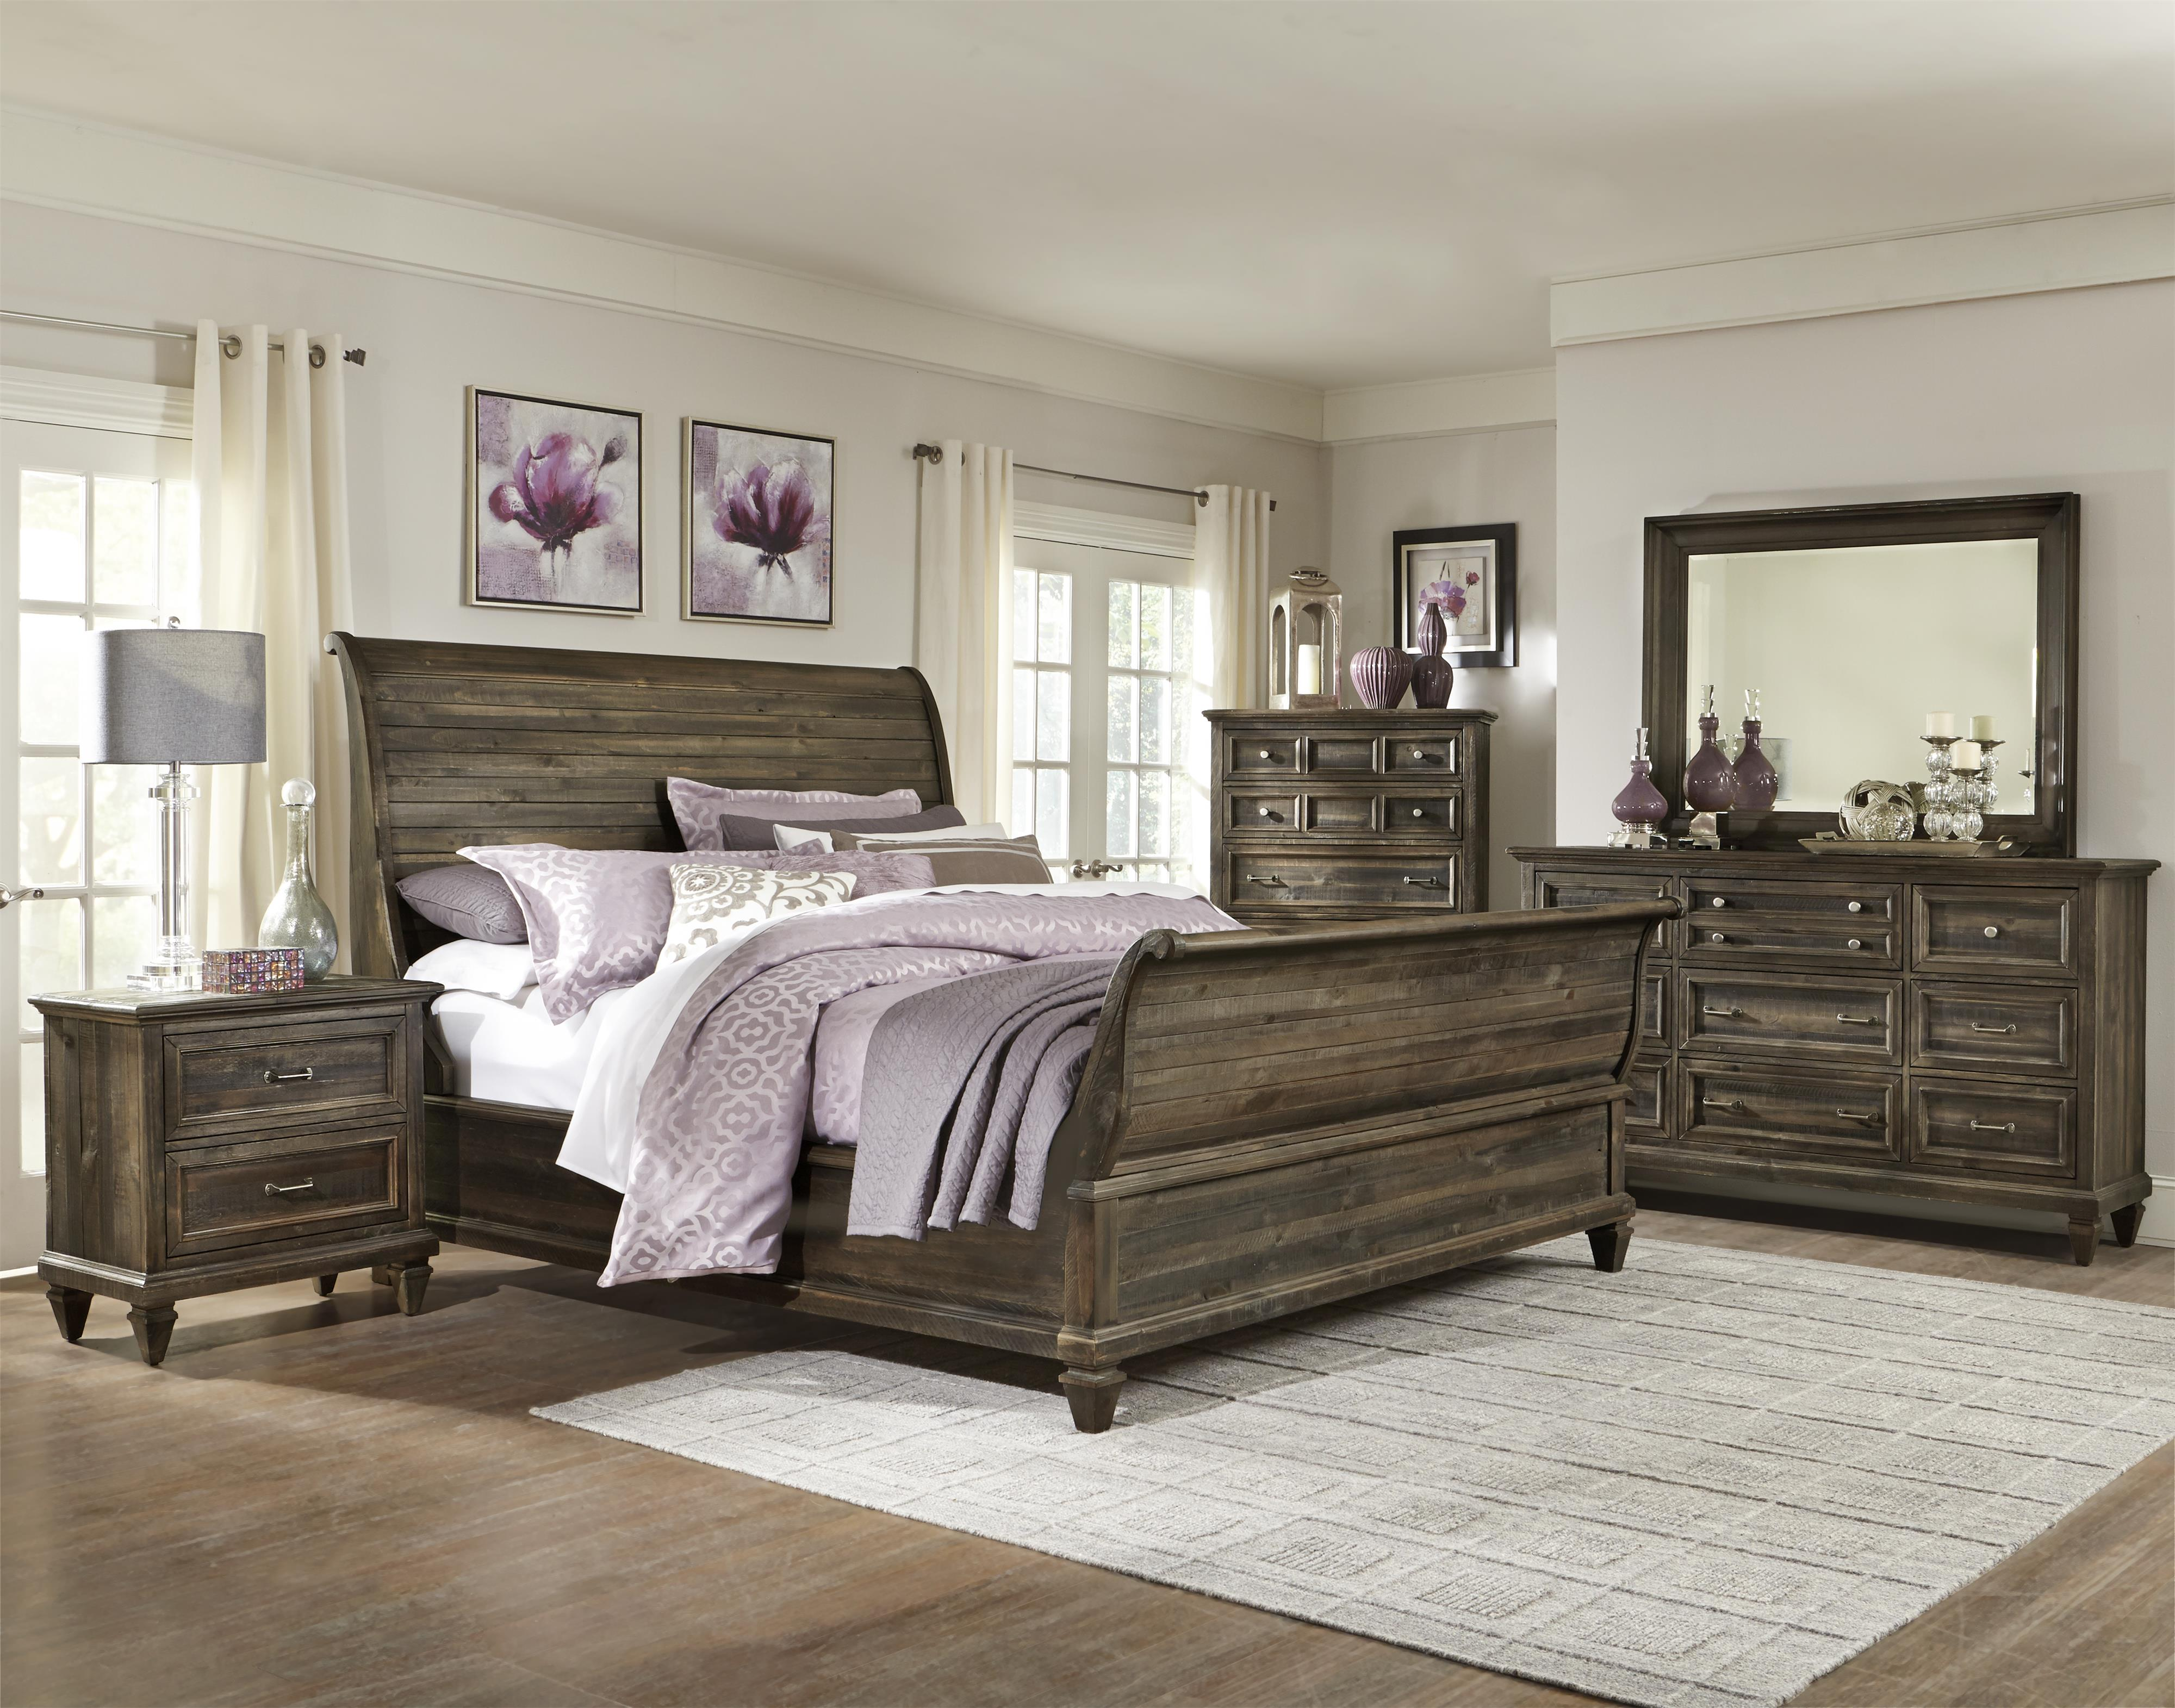 Magnussen Home Calistoga Queen Panel Bed with Headboard and